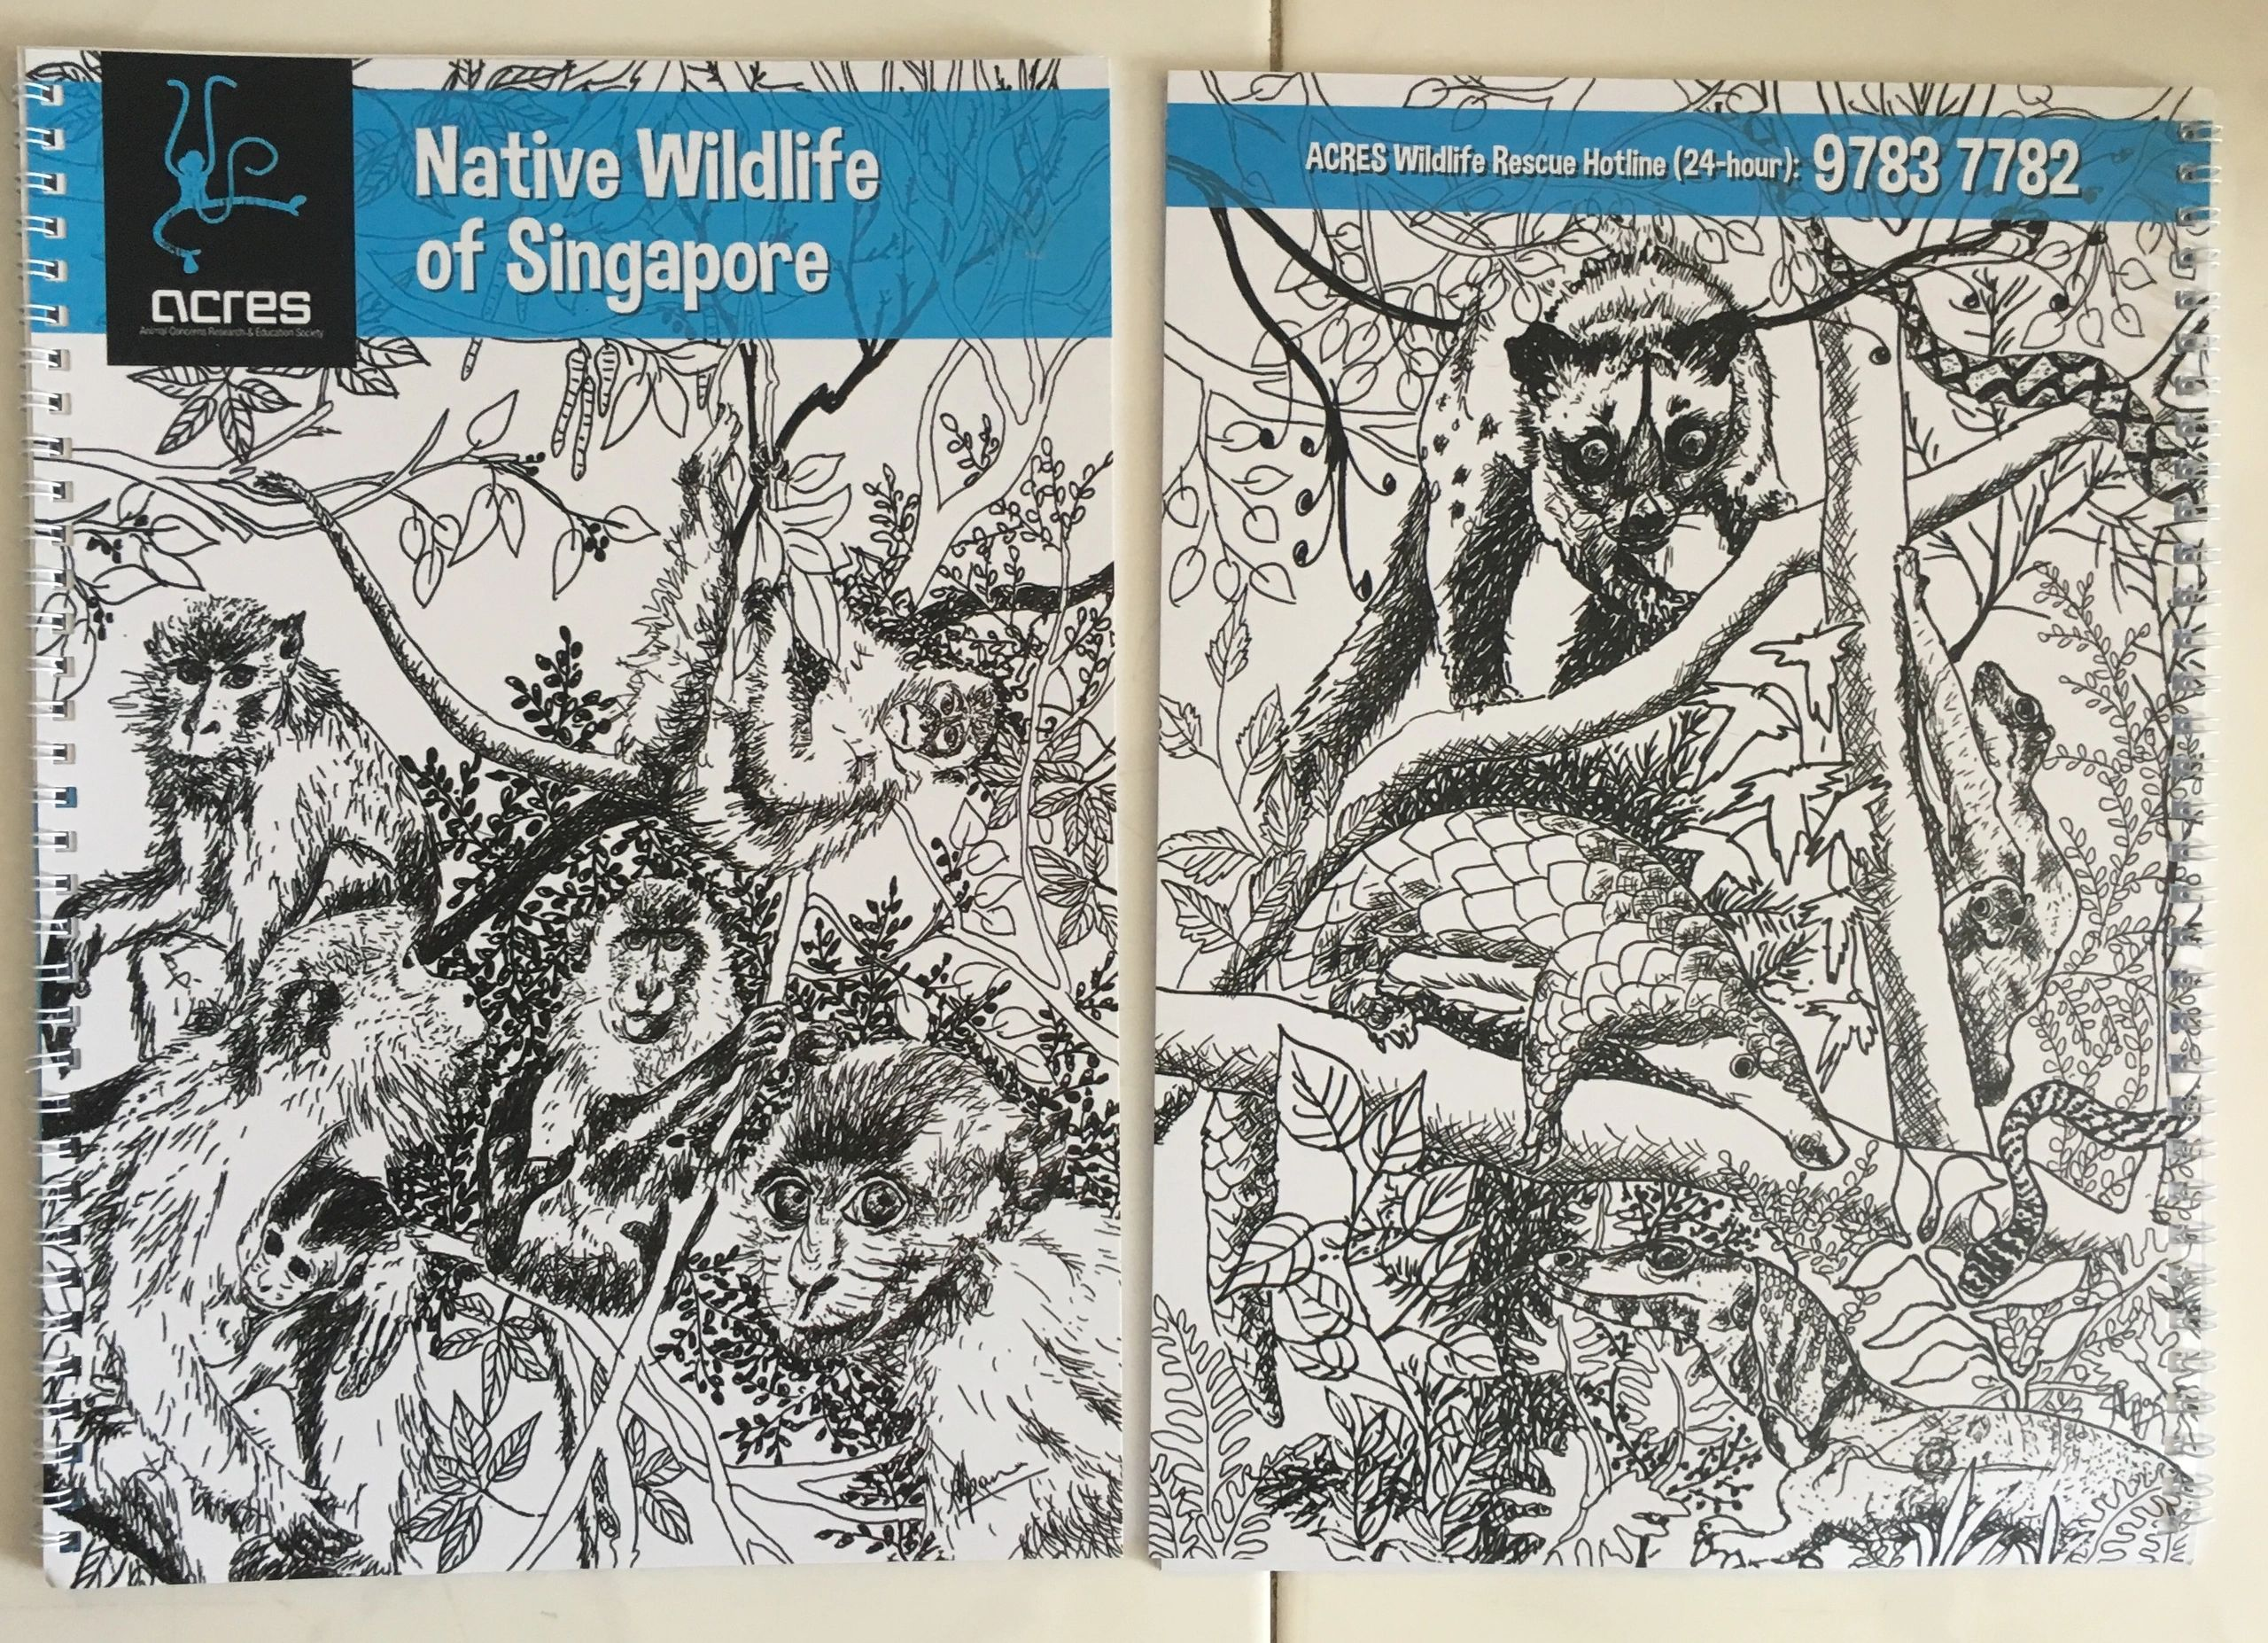 "{""blocks"":[{""key"":""bltna"",""text"":""Native Wildlife of Singapore (2016). Created in the Chinese year of the monkey, dedicated to the precious wildlife of Singapore's rainforests. A note book with an art activities for ACRES Singapore."",""type"":""unstyled"",""depth"":0,""inlineStyleRanges"":[{""offset"":0,""length"":29,""style"":""BOLD""}],""entityRanges"":[],""data"":{}}],""entityMap"":{}}"